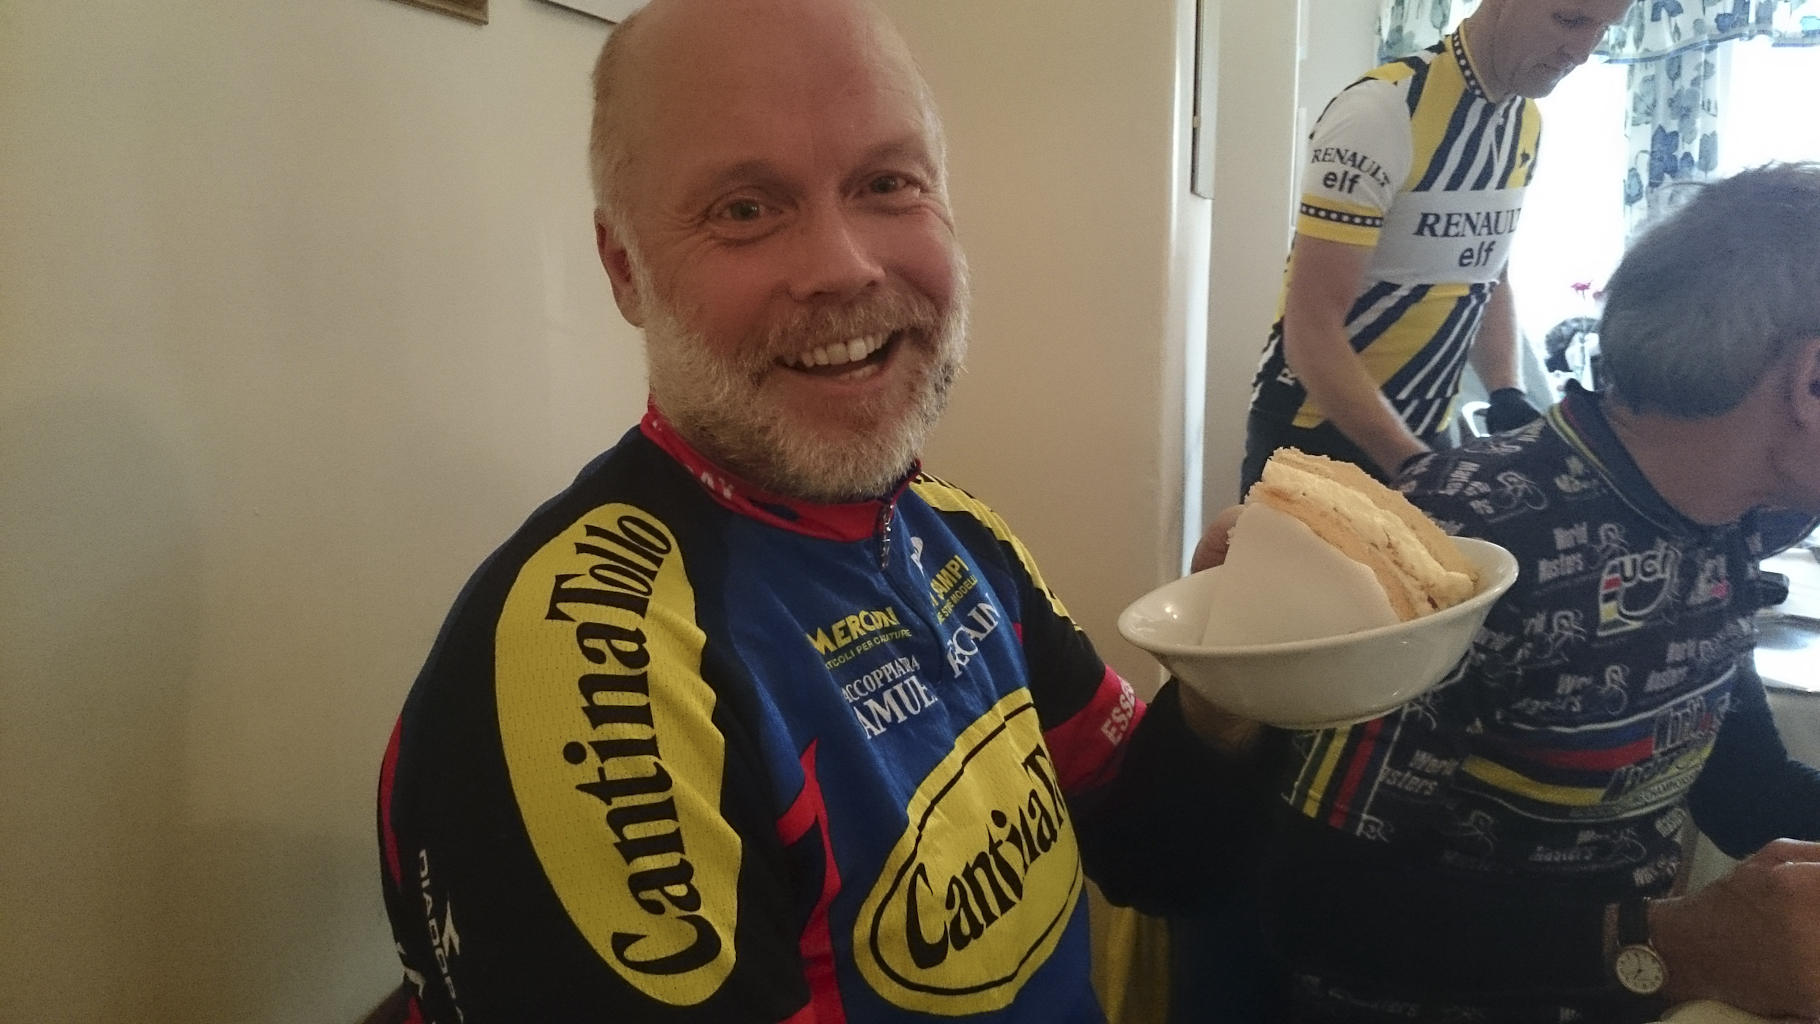 Paul, that is the biggest portion of Victoria Sponge we've ever seen, you'll never be able to eat it...